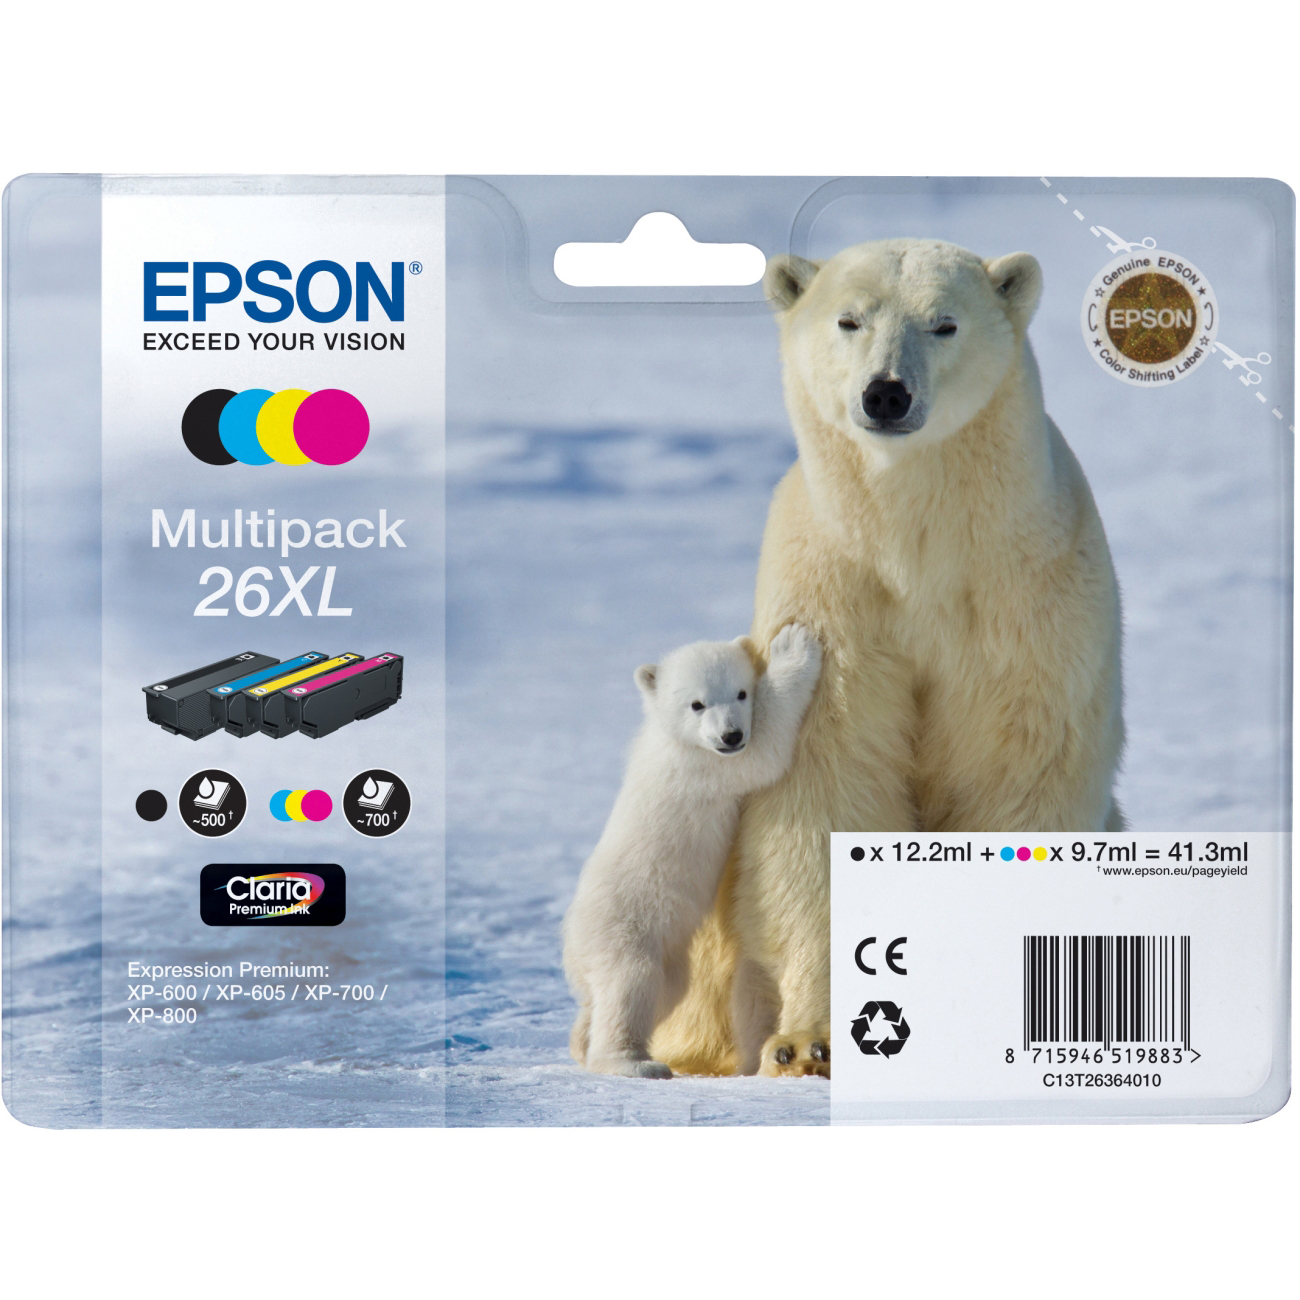 Original Epson 26XL CMYK Multipack High Capacity Ink Cartridges (C13T26364010)